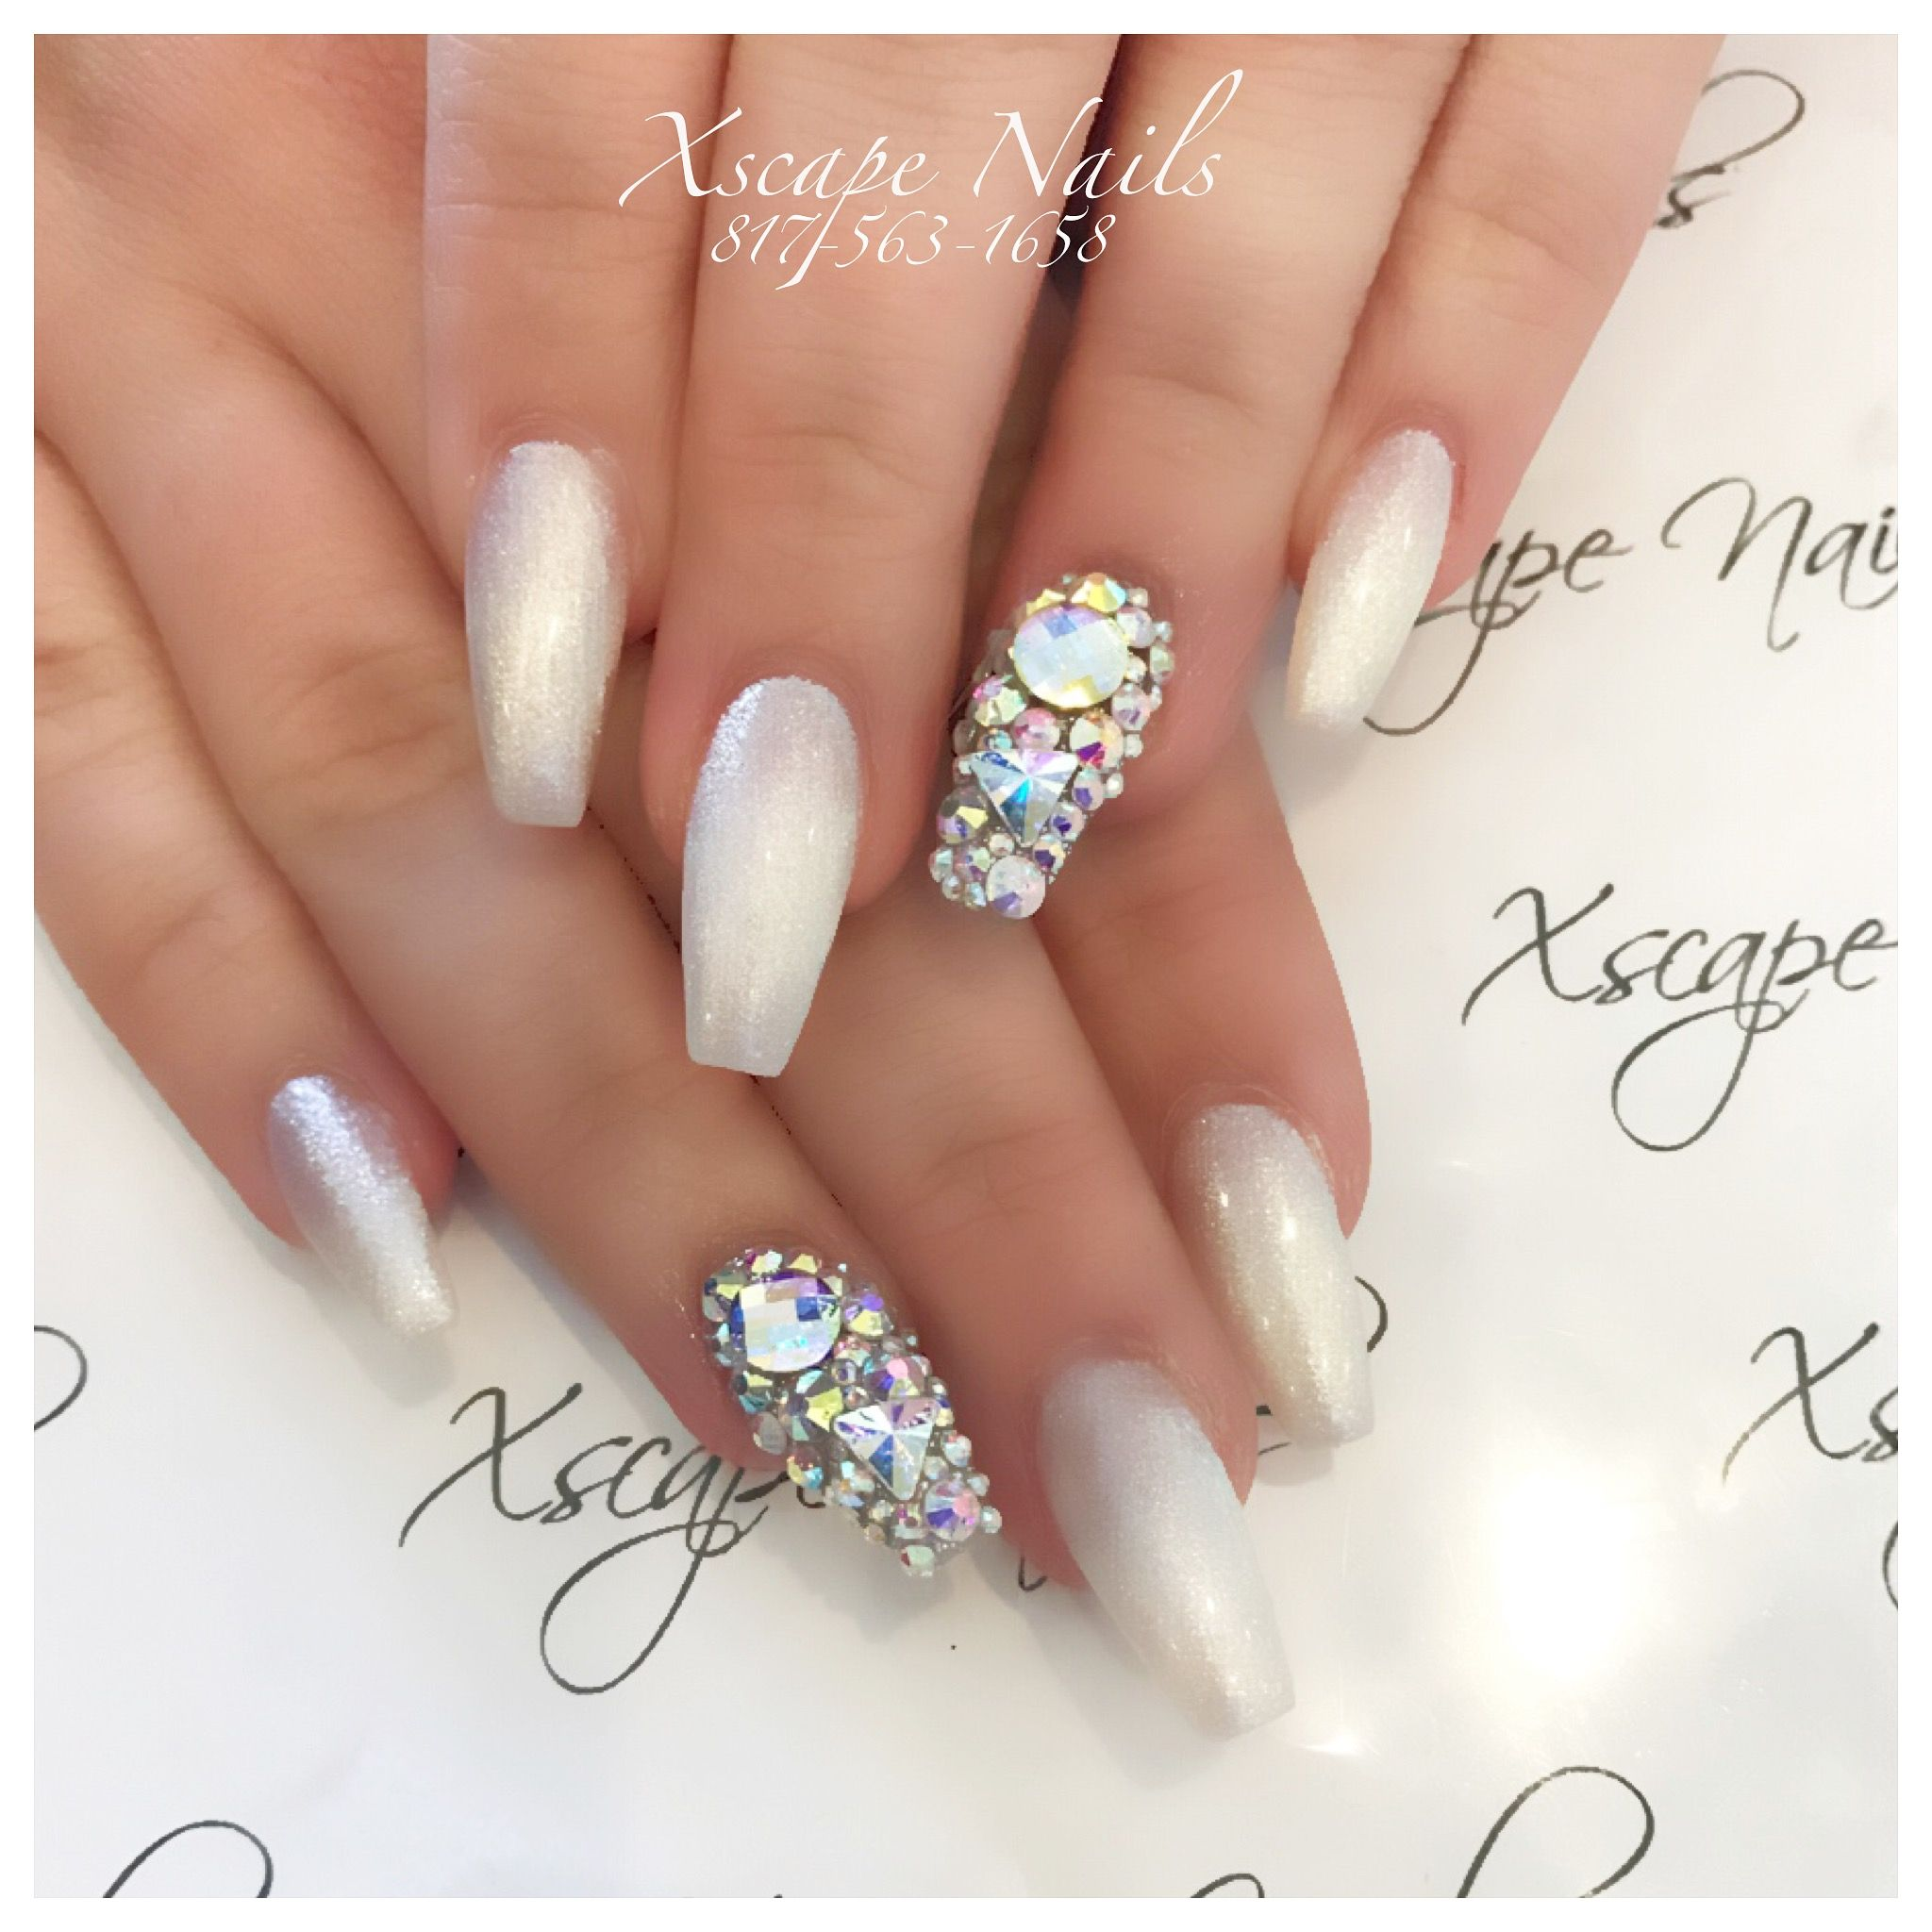 New Years Nails | Cute Nails Designs | Pinterest | Crazy nails